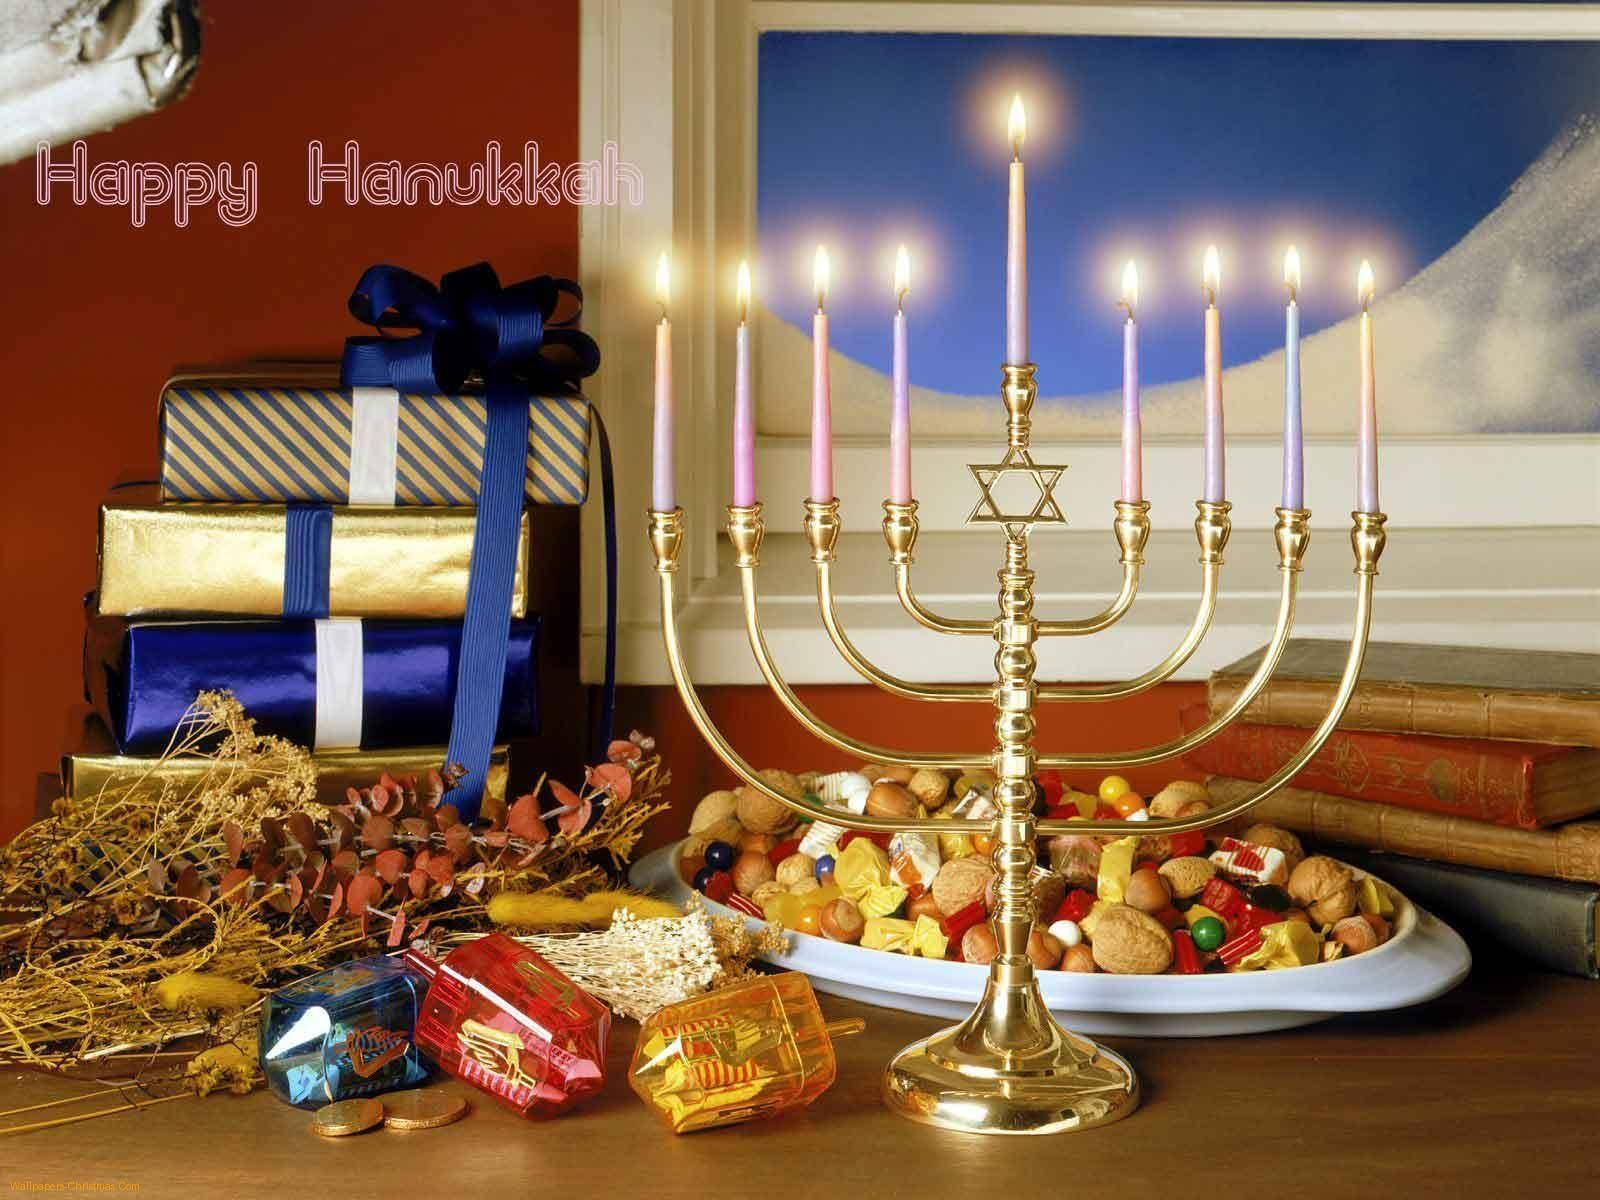 Happy Hanukkah Wallpaper HQ Resolution #69850 - ARASPOT.com